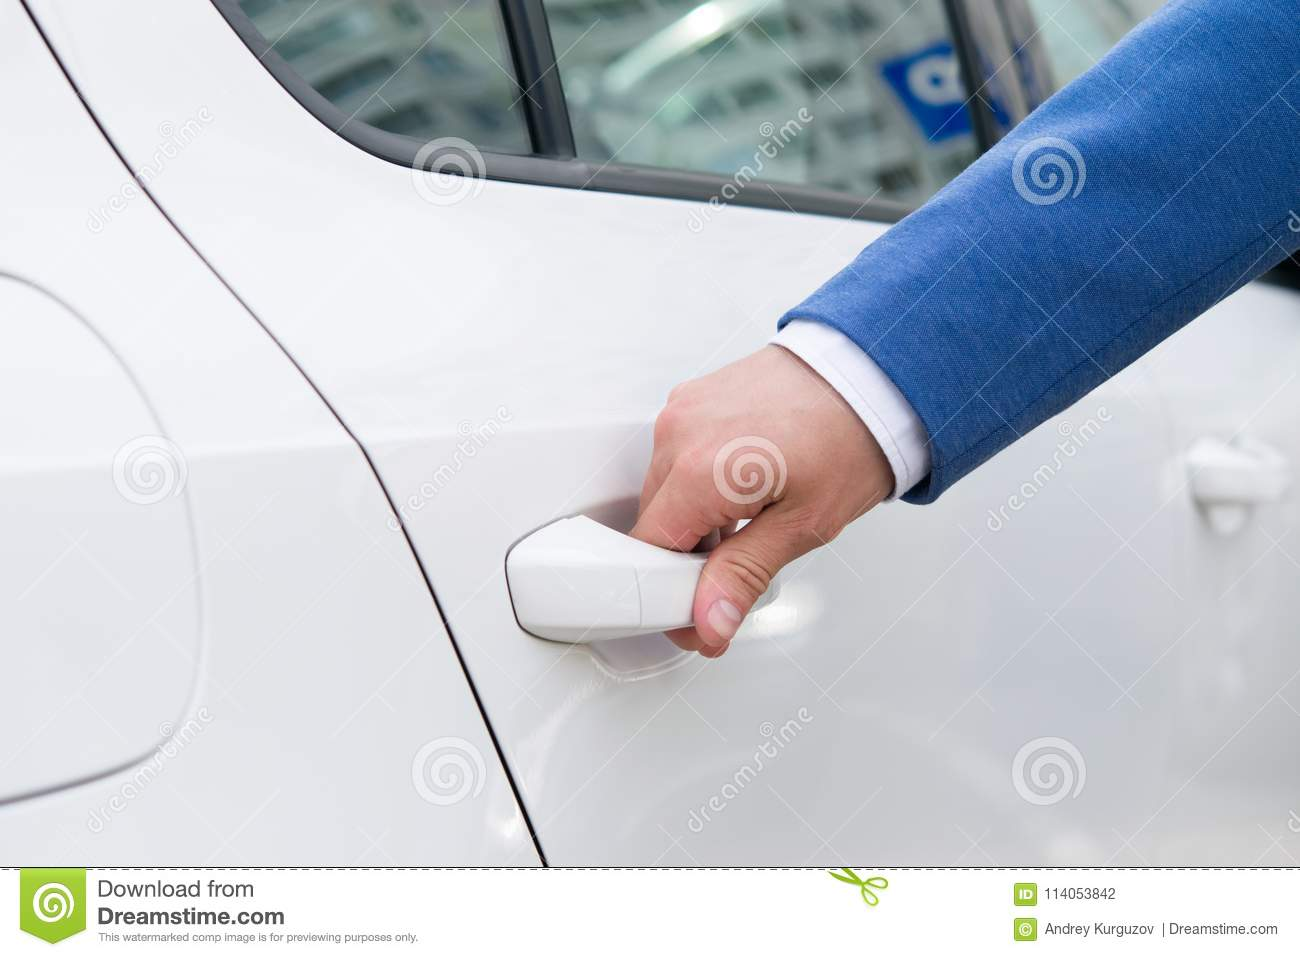 Hand of a man trying to open the back door of a white car